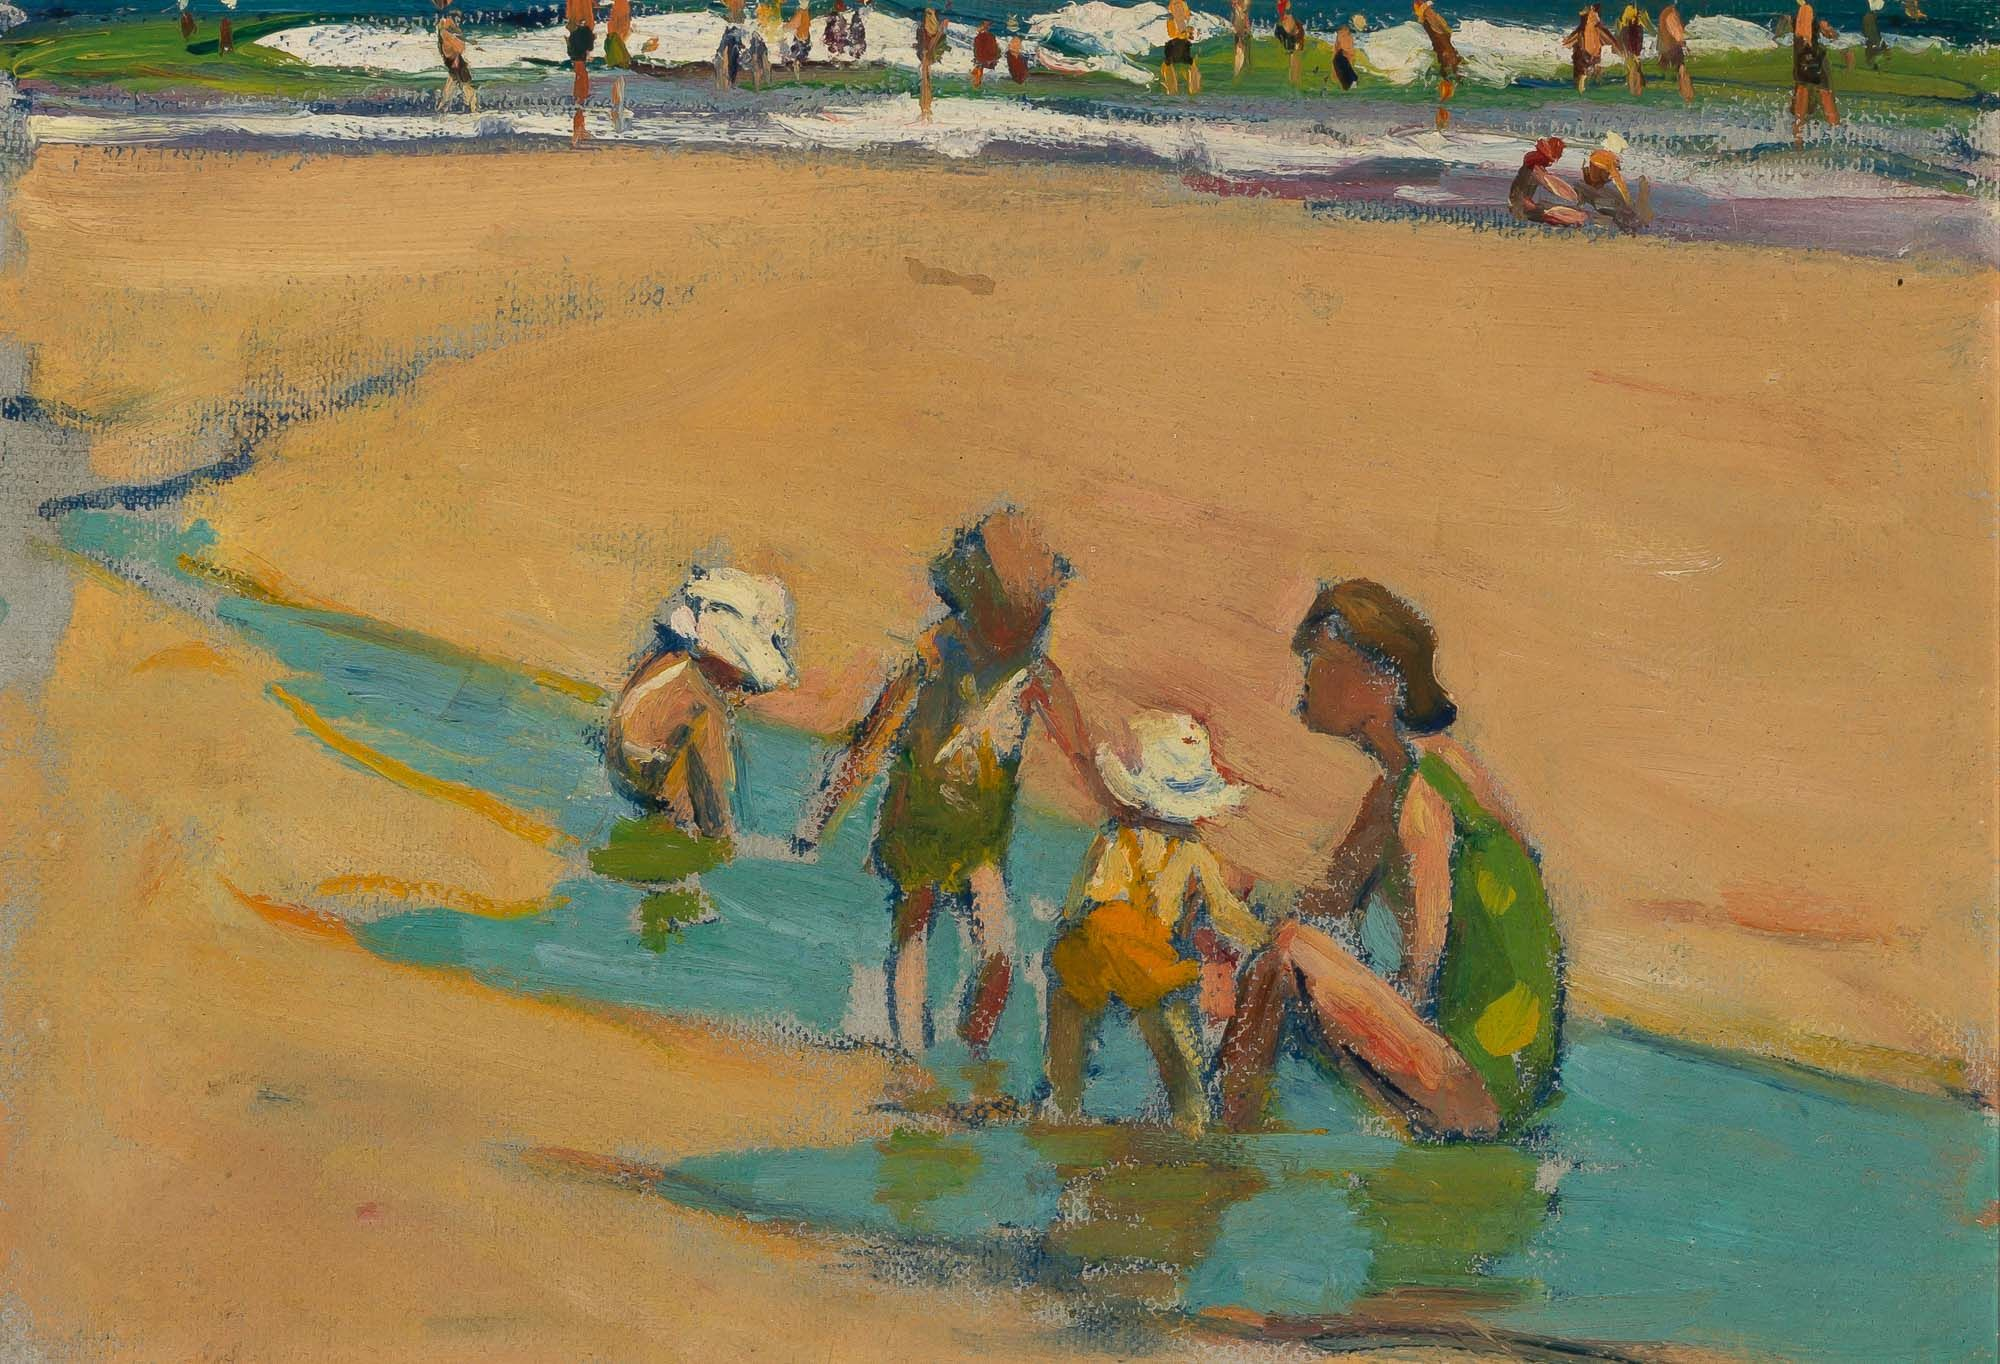 Lot 1045 Gertrude Horsford Fiske American 1878 1961 Summer Day At The Beach In 2020 American Impressionism Cleveland Museum Of Art Gertrudes